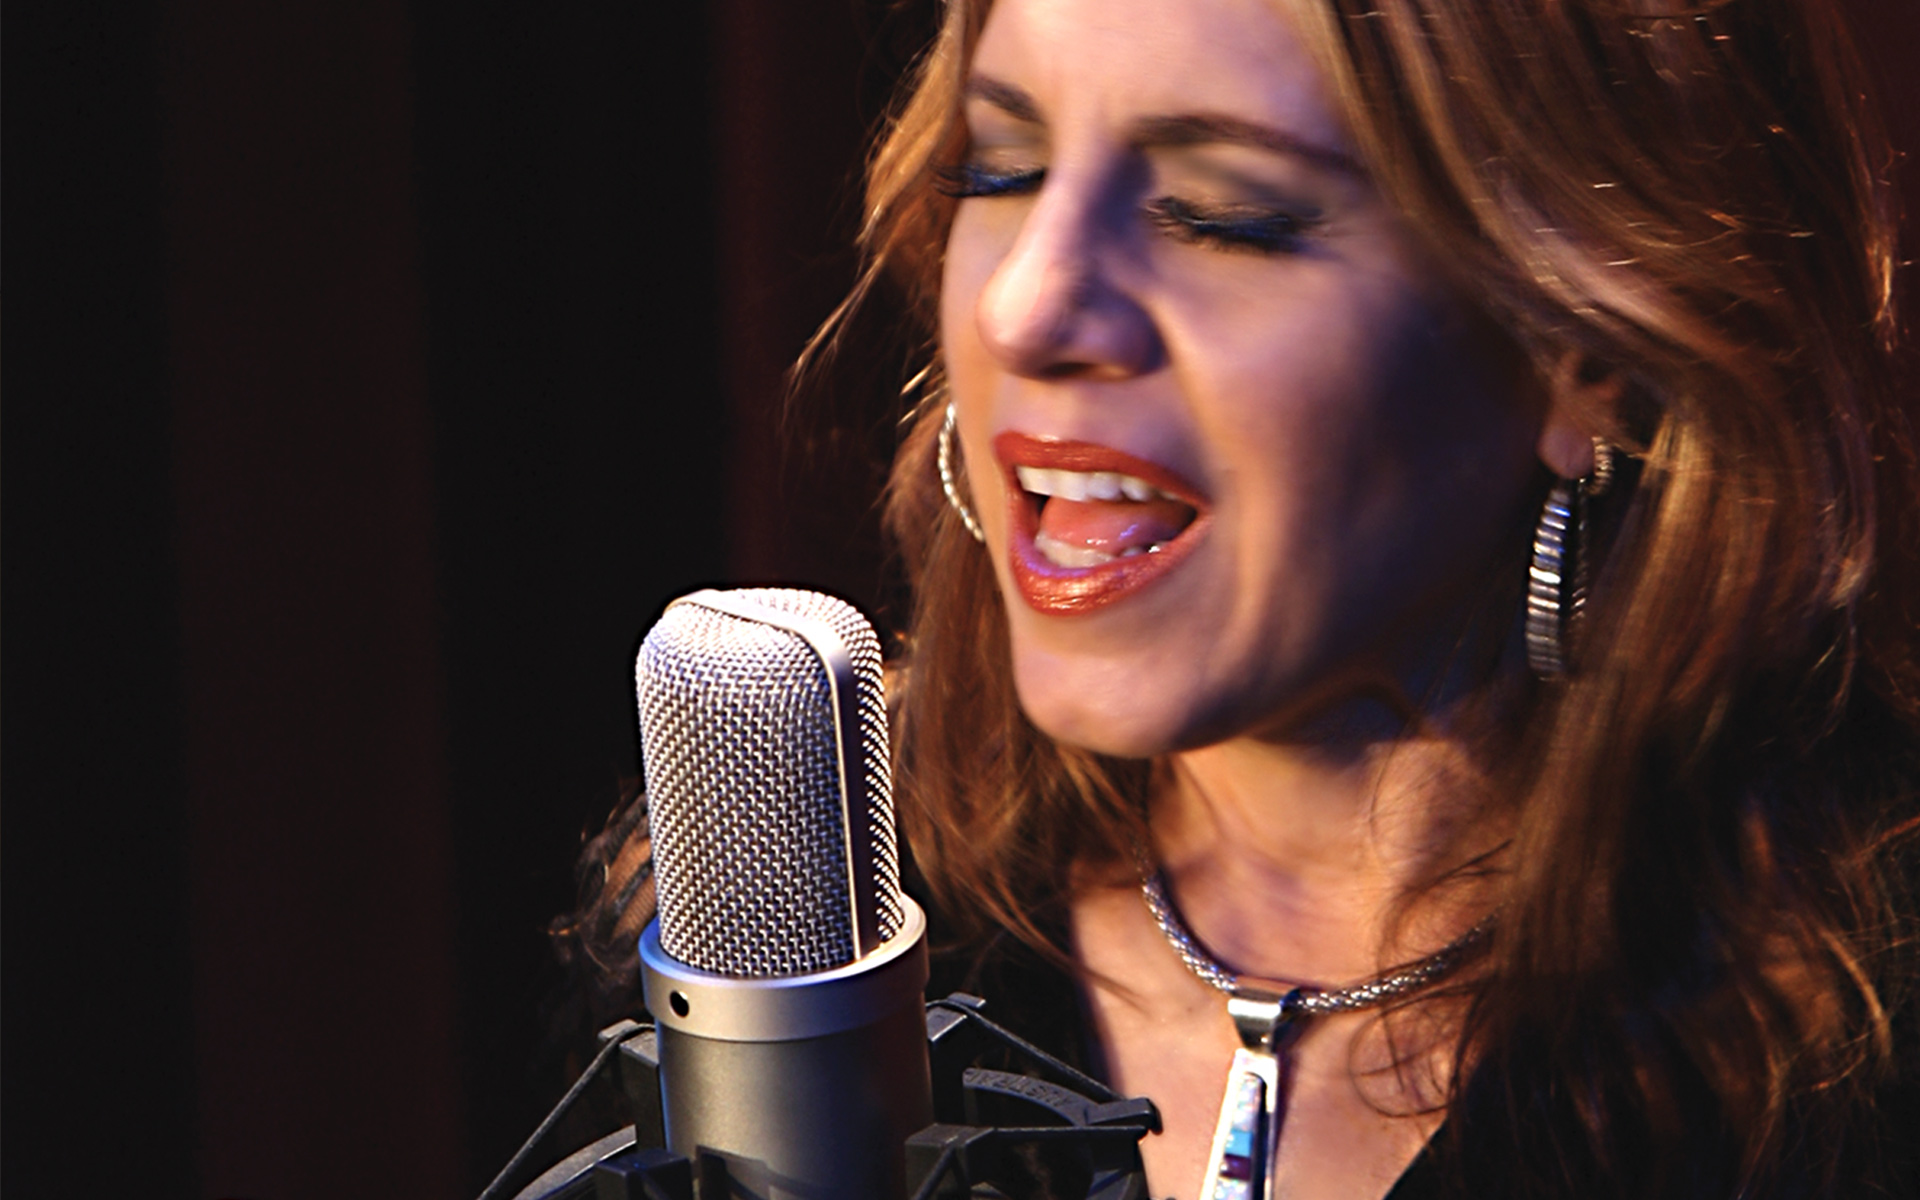 Online Voice Lessons to Develop Your Singing